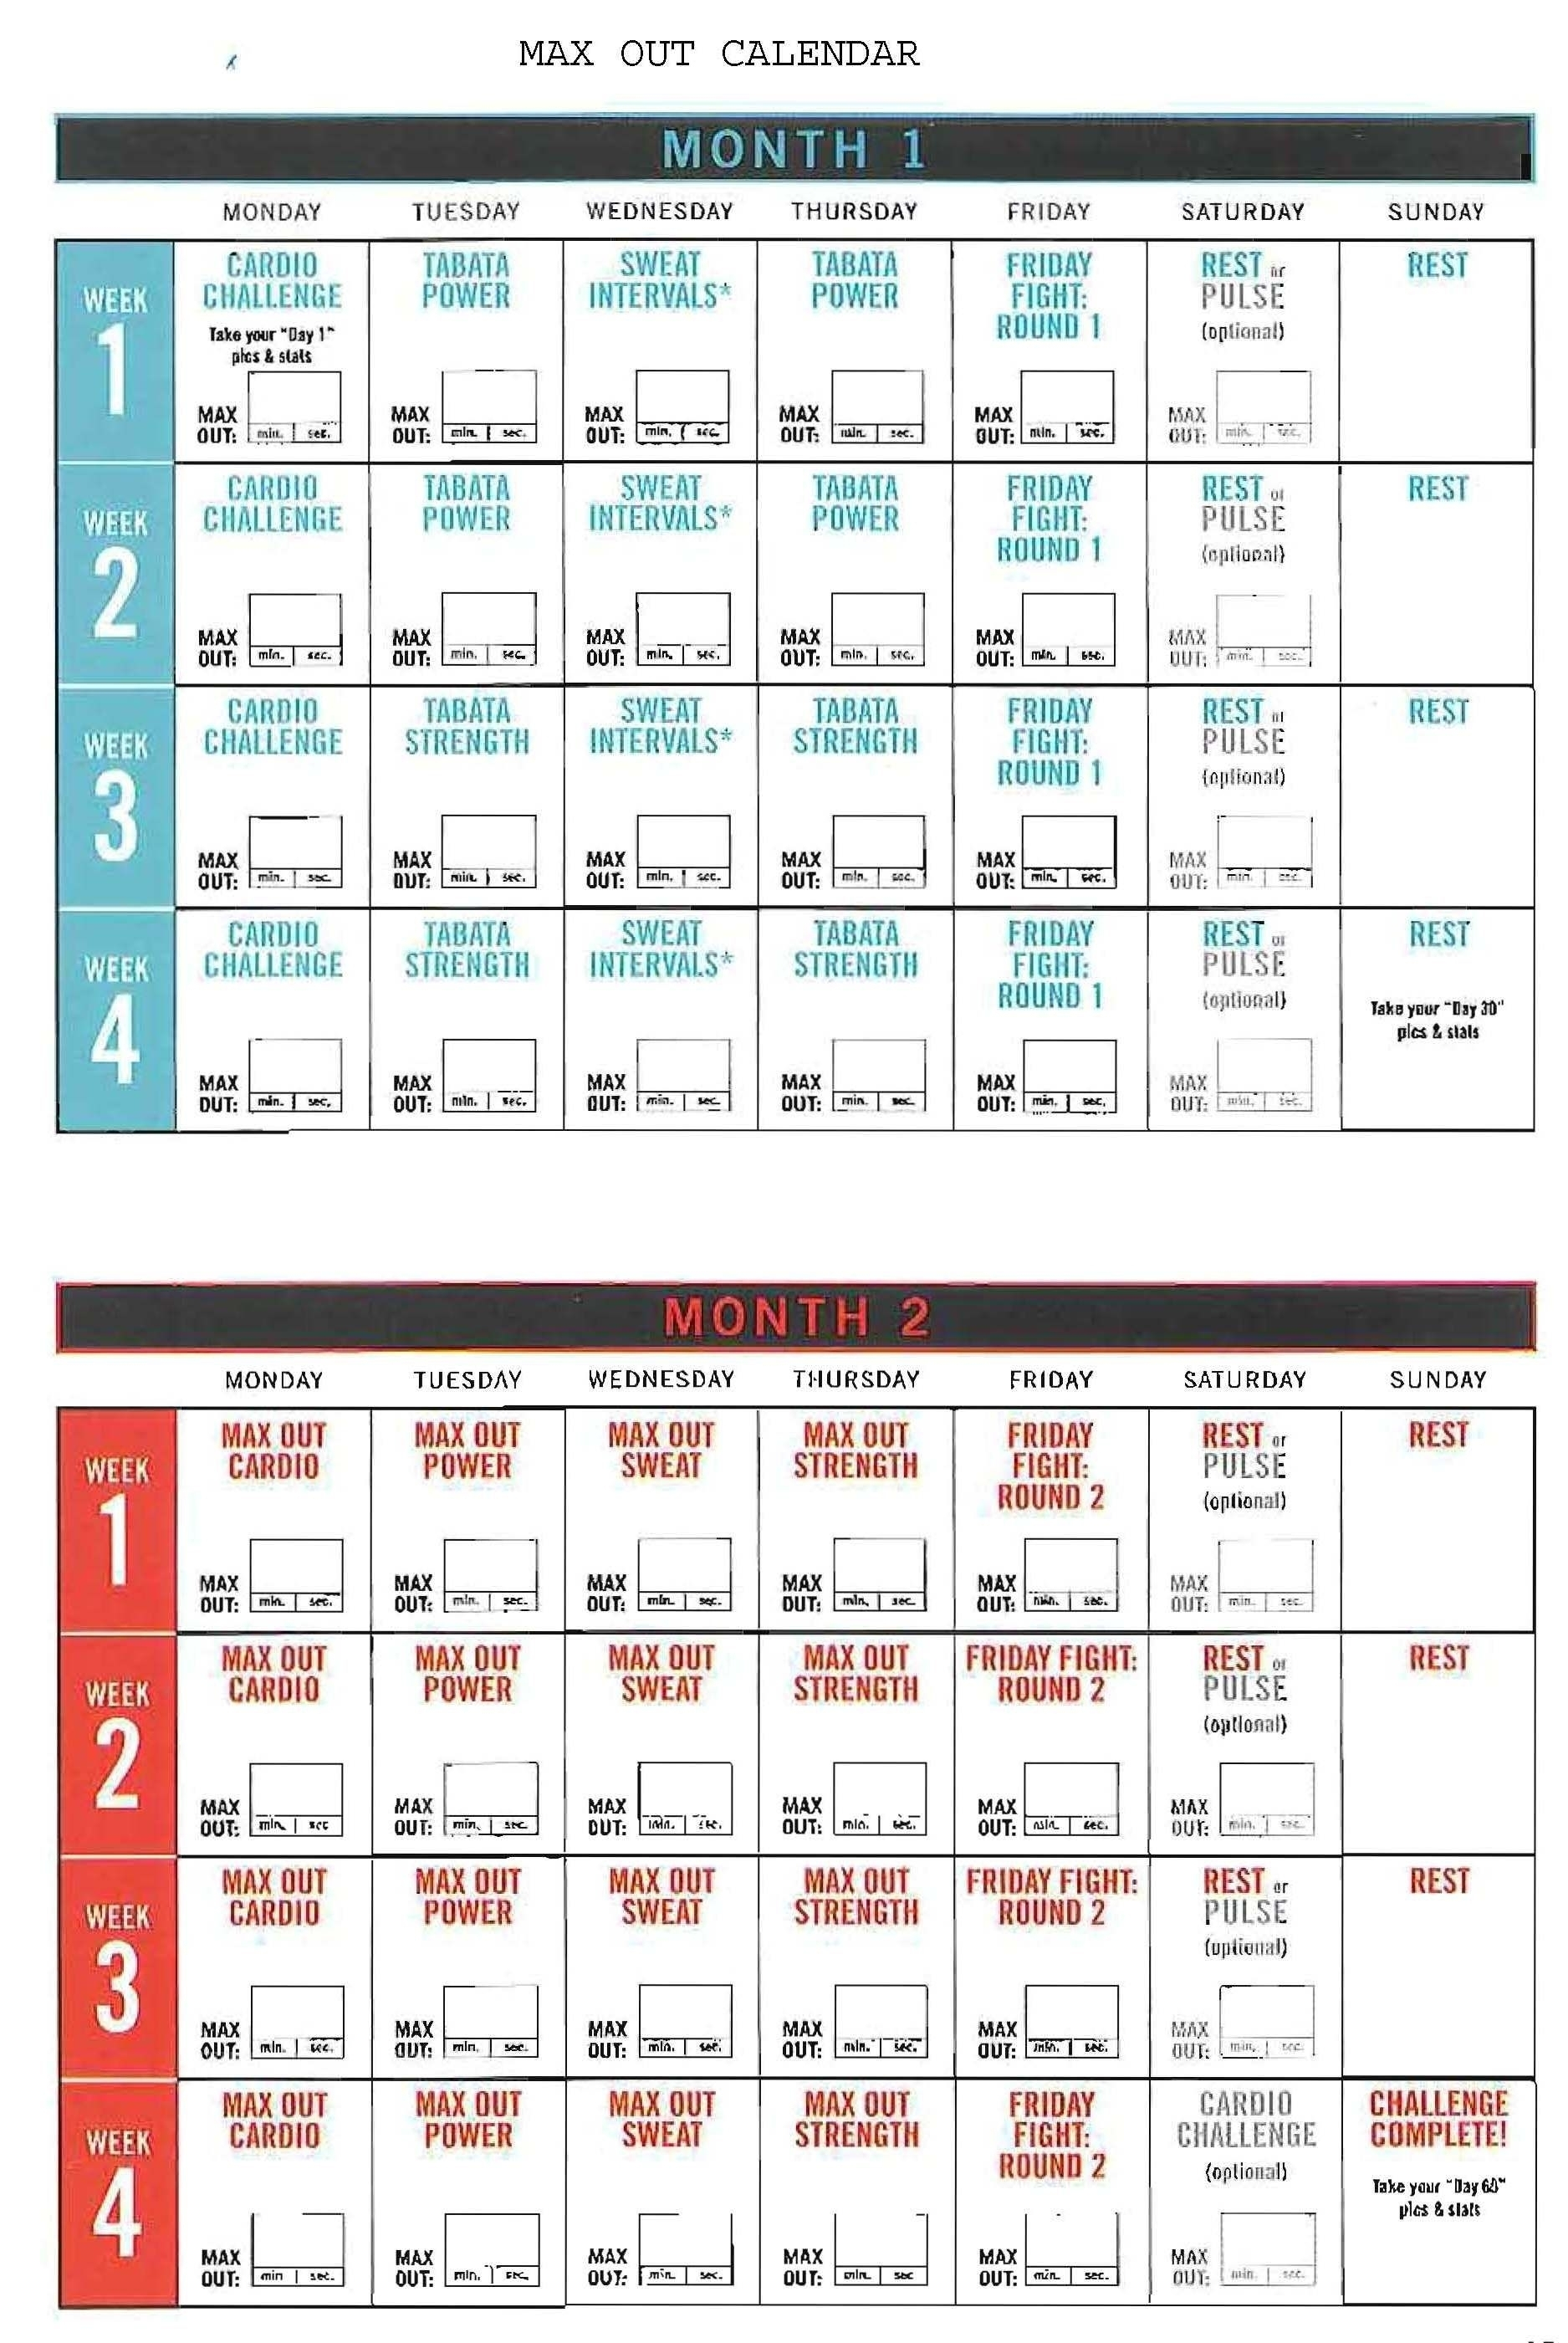 Insanity Max 30 Calendar Pdf | Template Calendar Printable throughout Insanity Max 30 Calendar Pdf